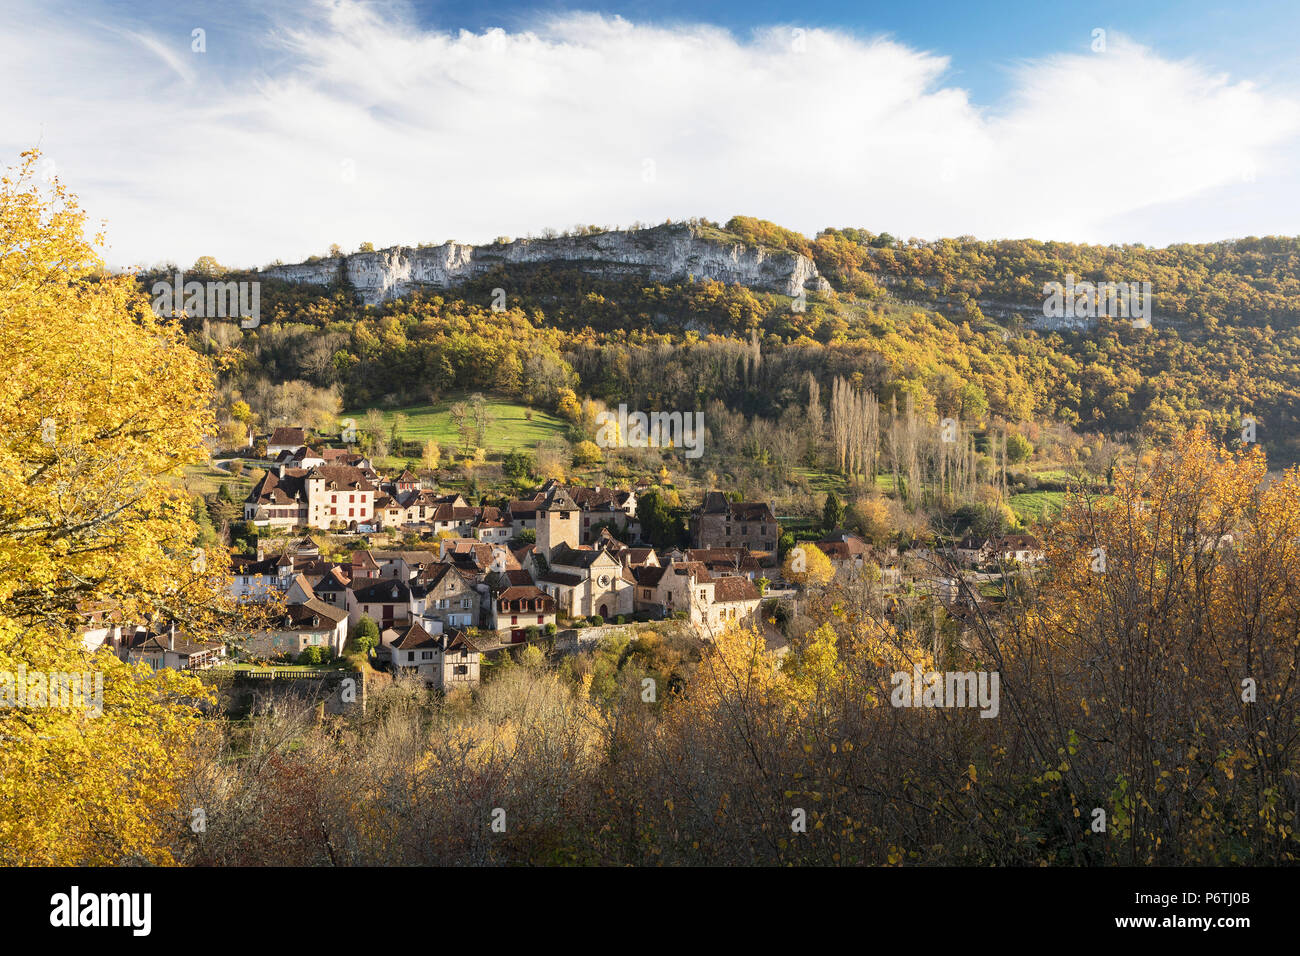 The village of Autoire in the autumn, Lot, Midi-Pyrenees, France - Stock Image